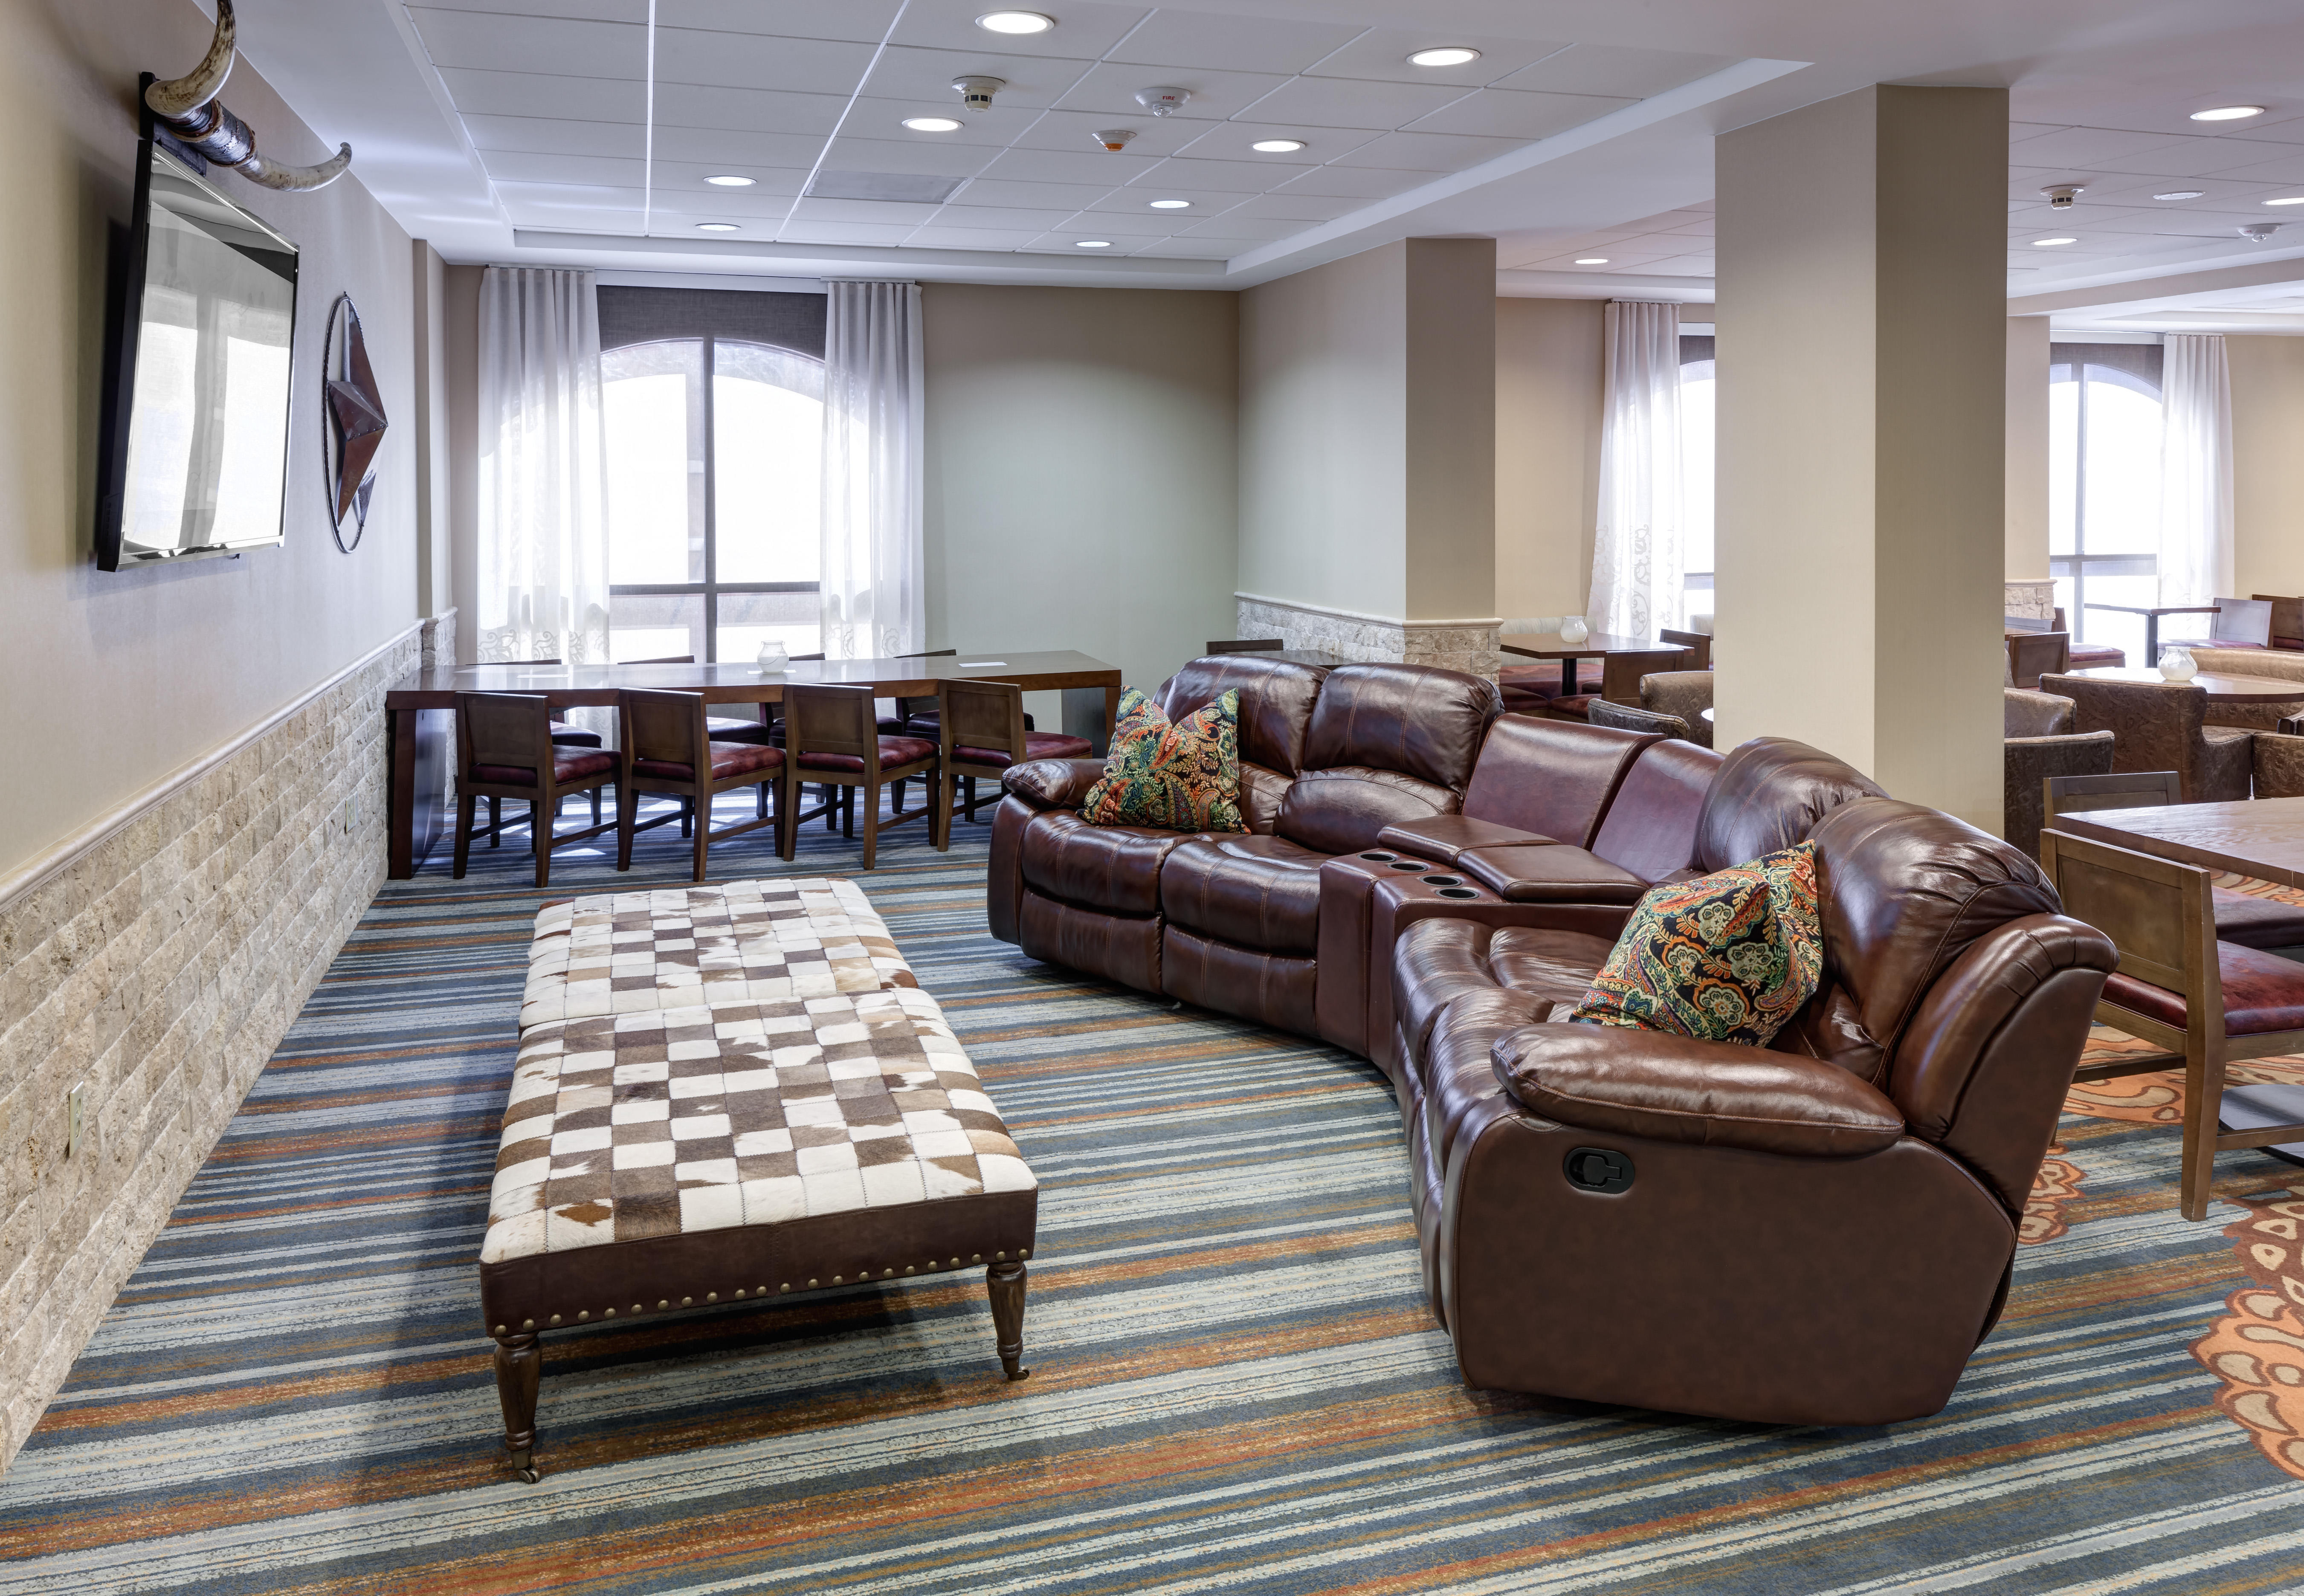 SpringHill Suites by Marriott Dallas Downtown/West End image 4